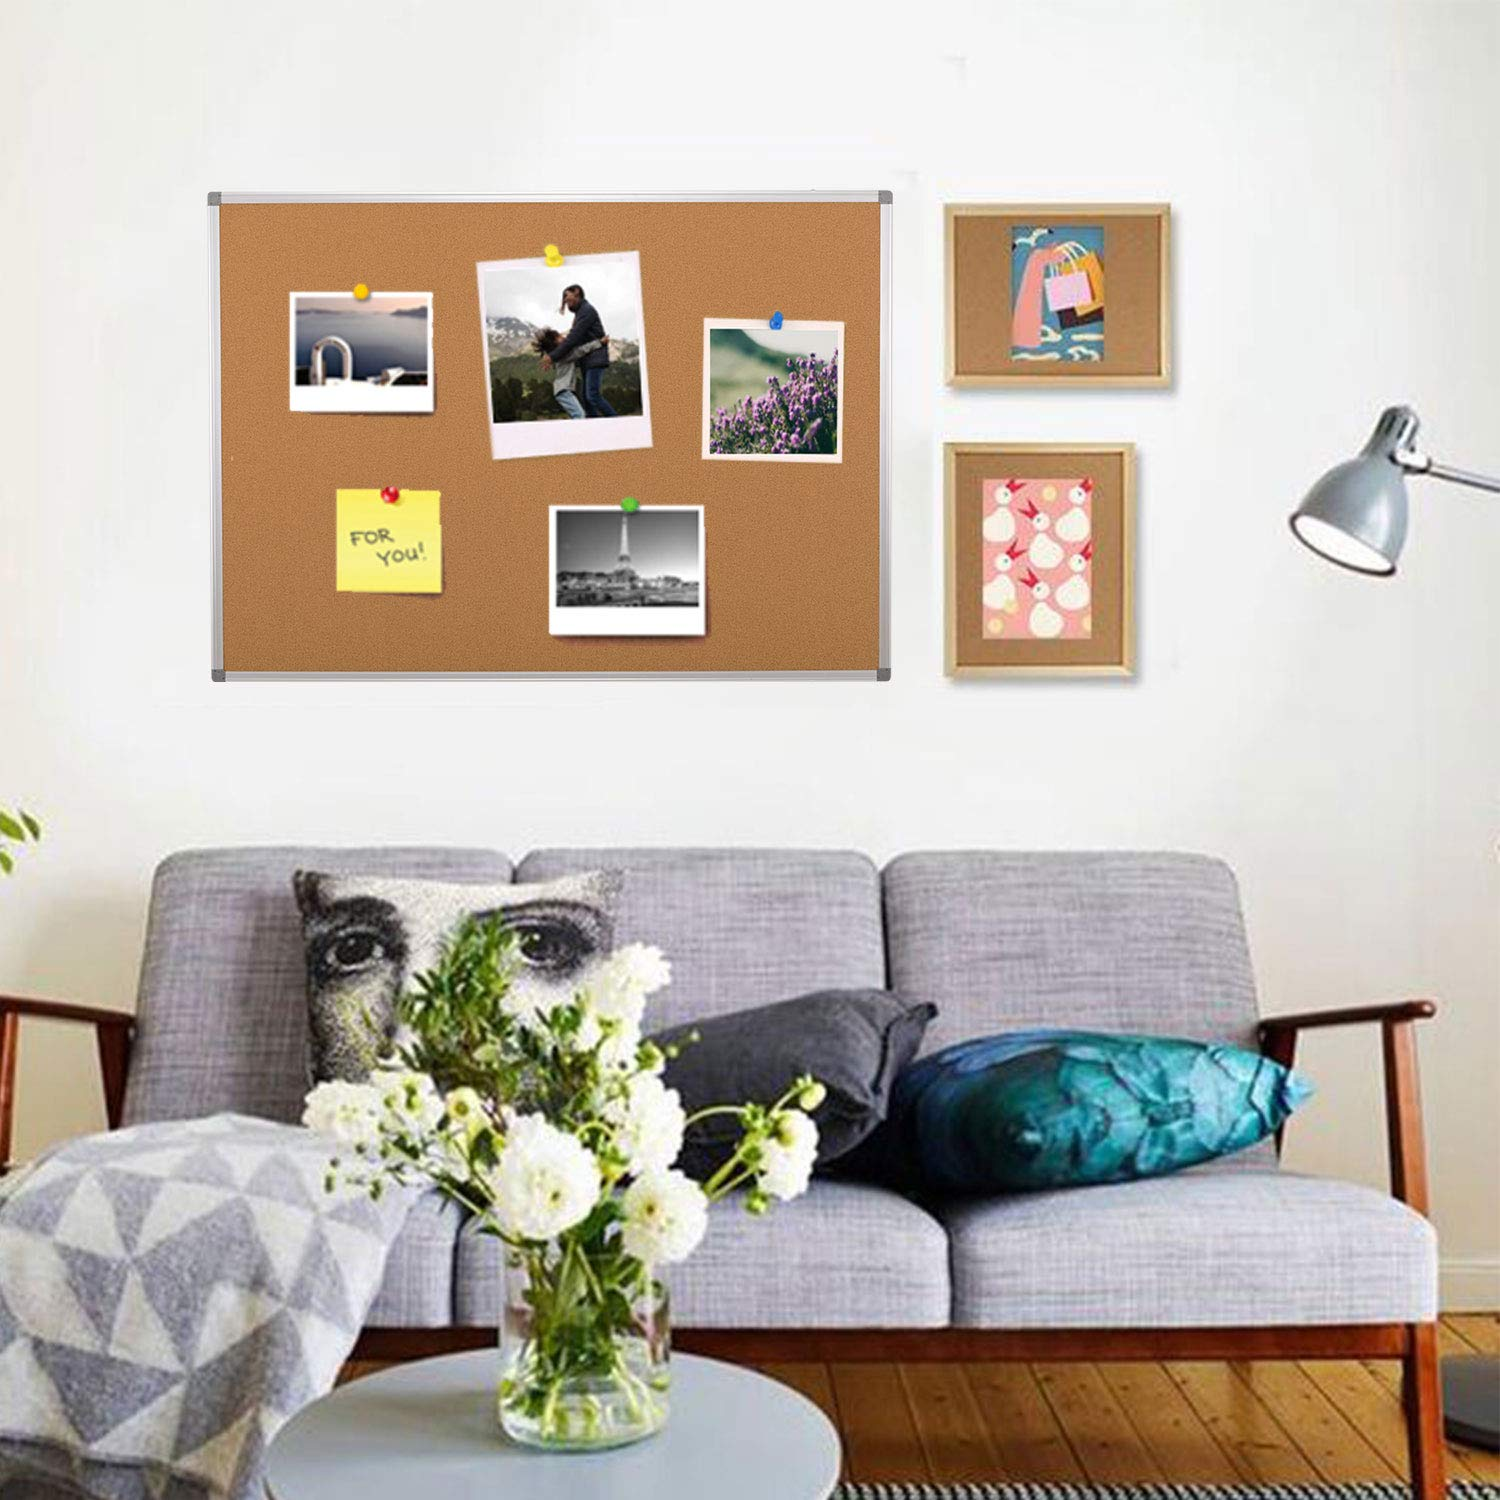 Swansea Big Cork Boards Home Pin Boards Office Notice Board A1 Display Boards with Fixing Kit 90x60cm